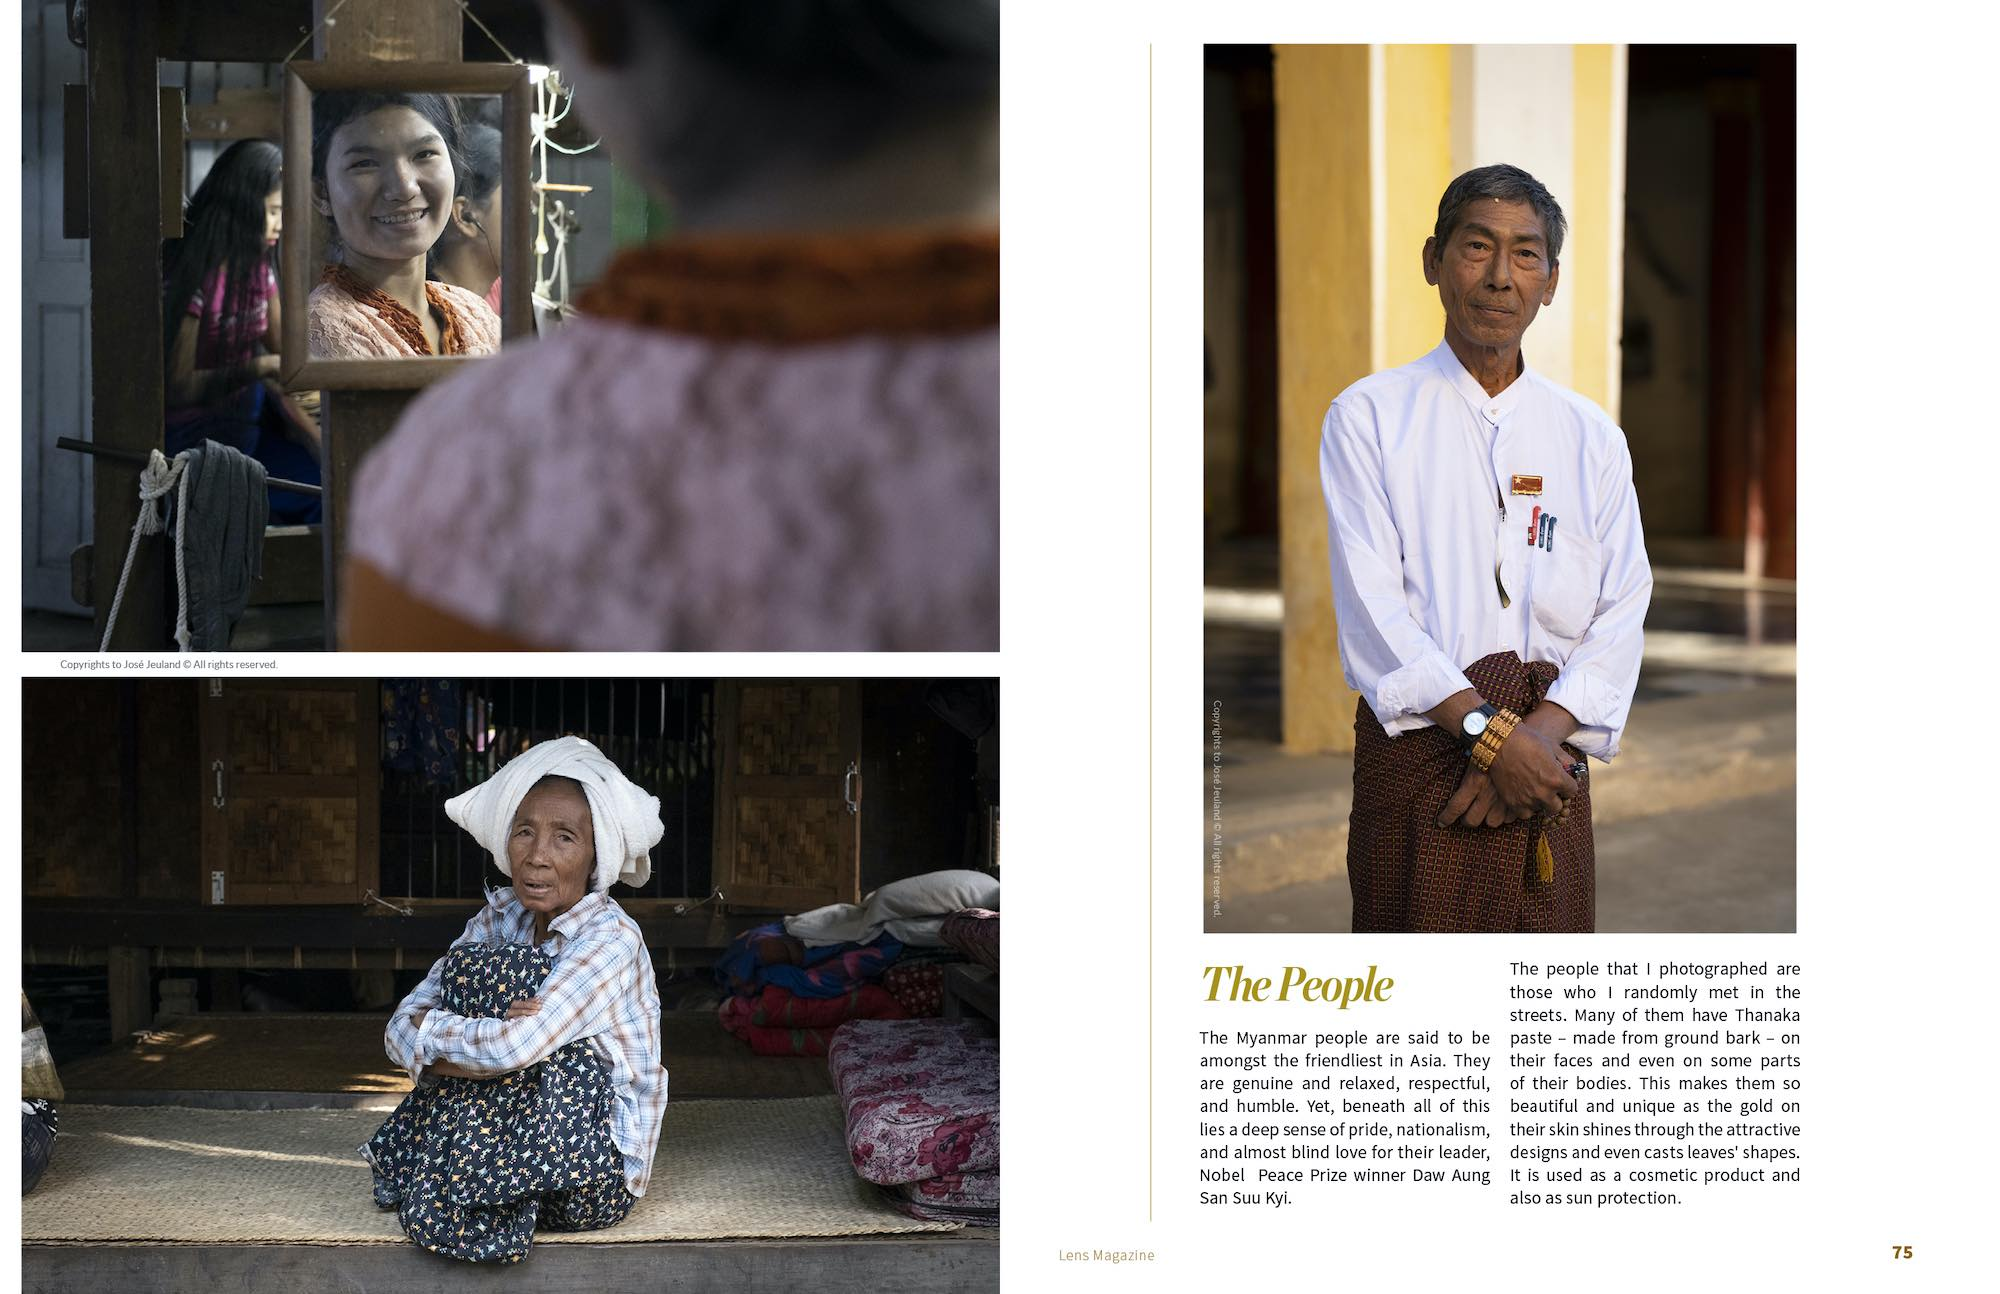 Lens Magazine_74_38 Golden Land Myanmar travel photography photographer